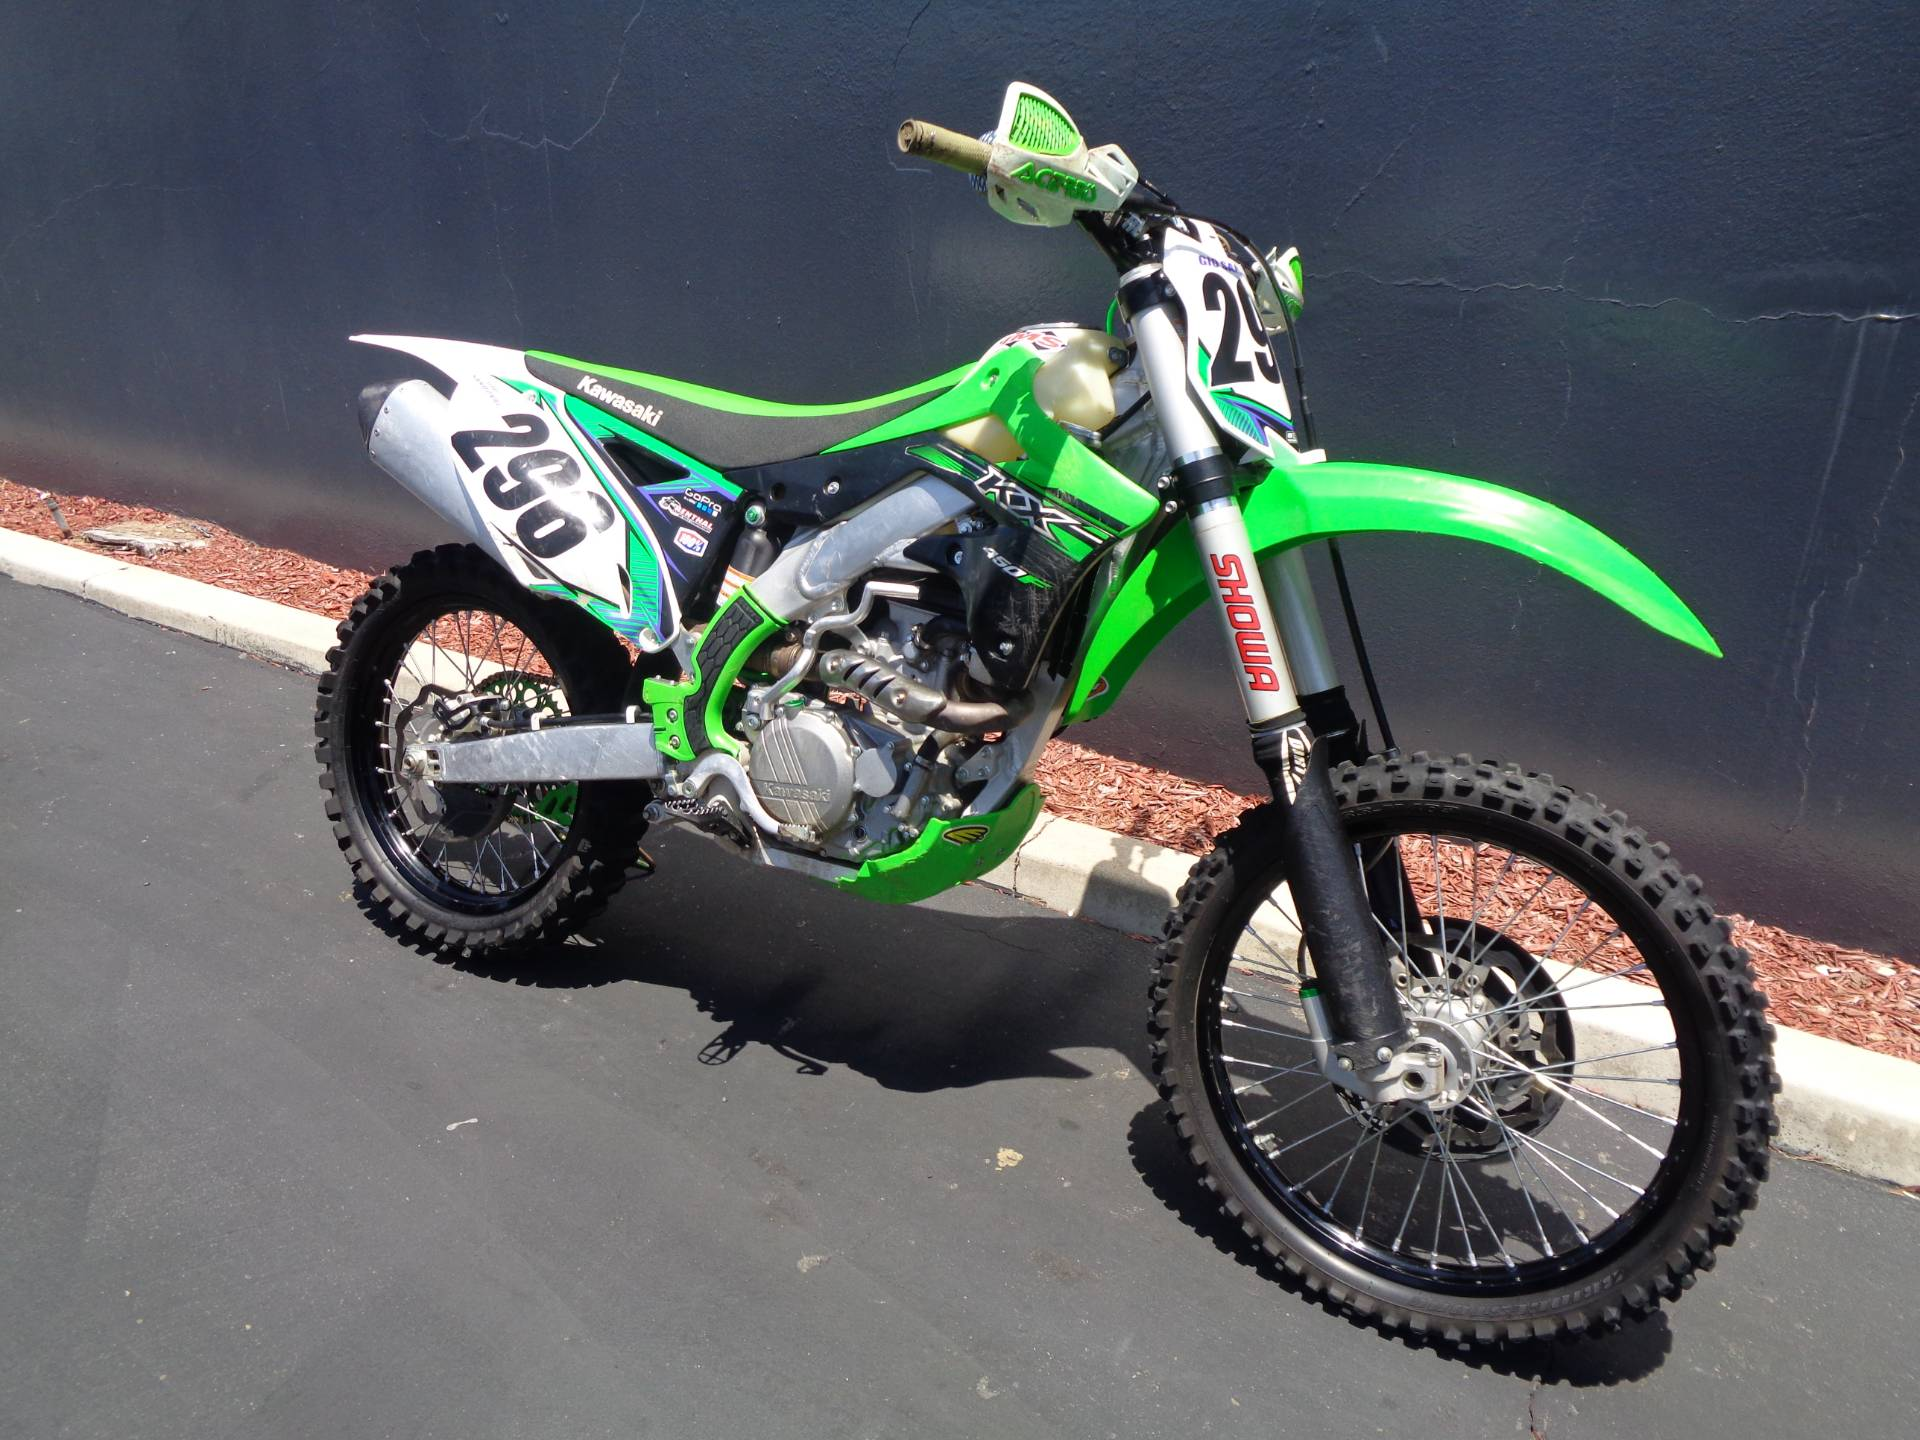 2015 Kawasaki KX™450F in Chula Vista, California - Photo 2